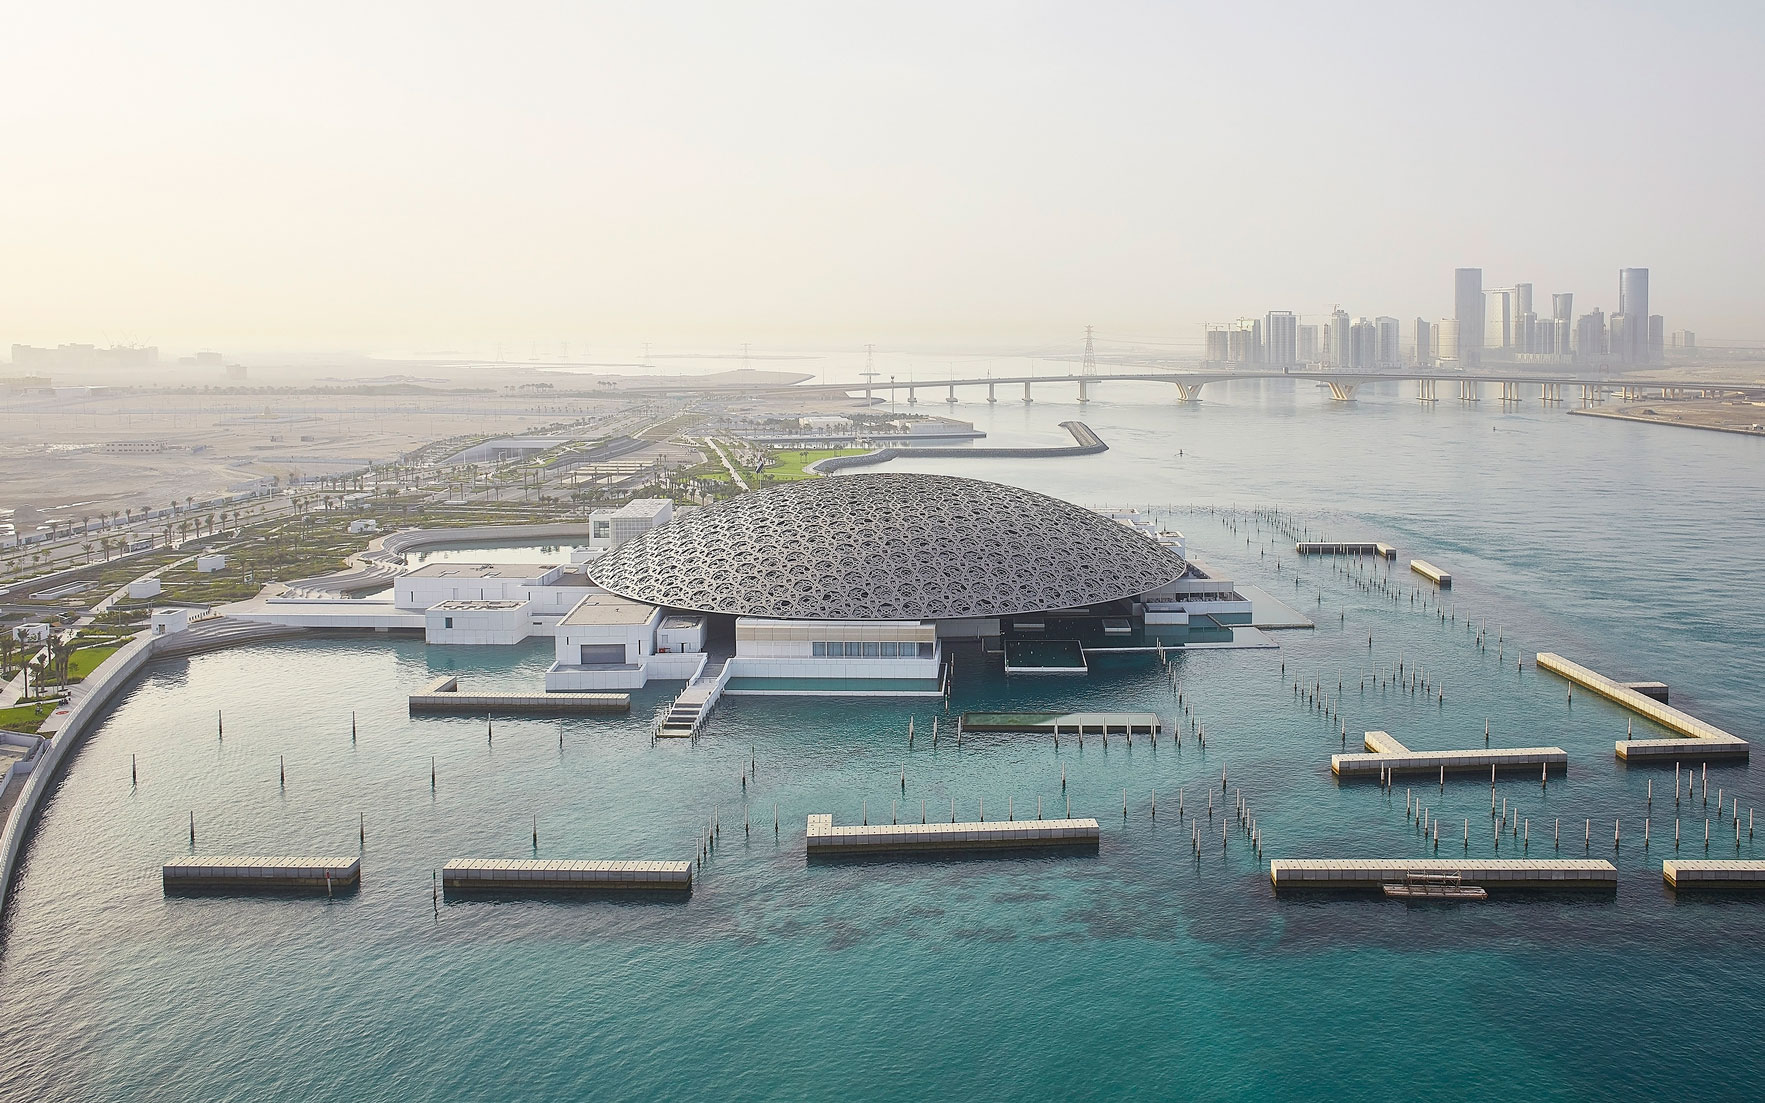 Aerial view of the Louvre Abu Dhabi. Photo © Department of Culture and Tourism - Abu Dhabi. Photography by Hufton+Crow